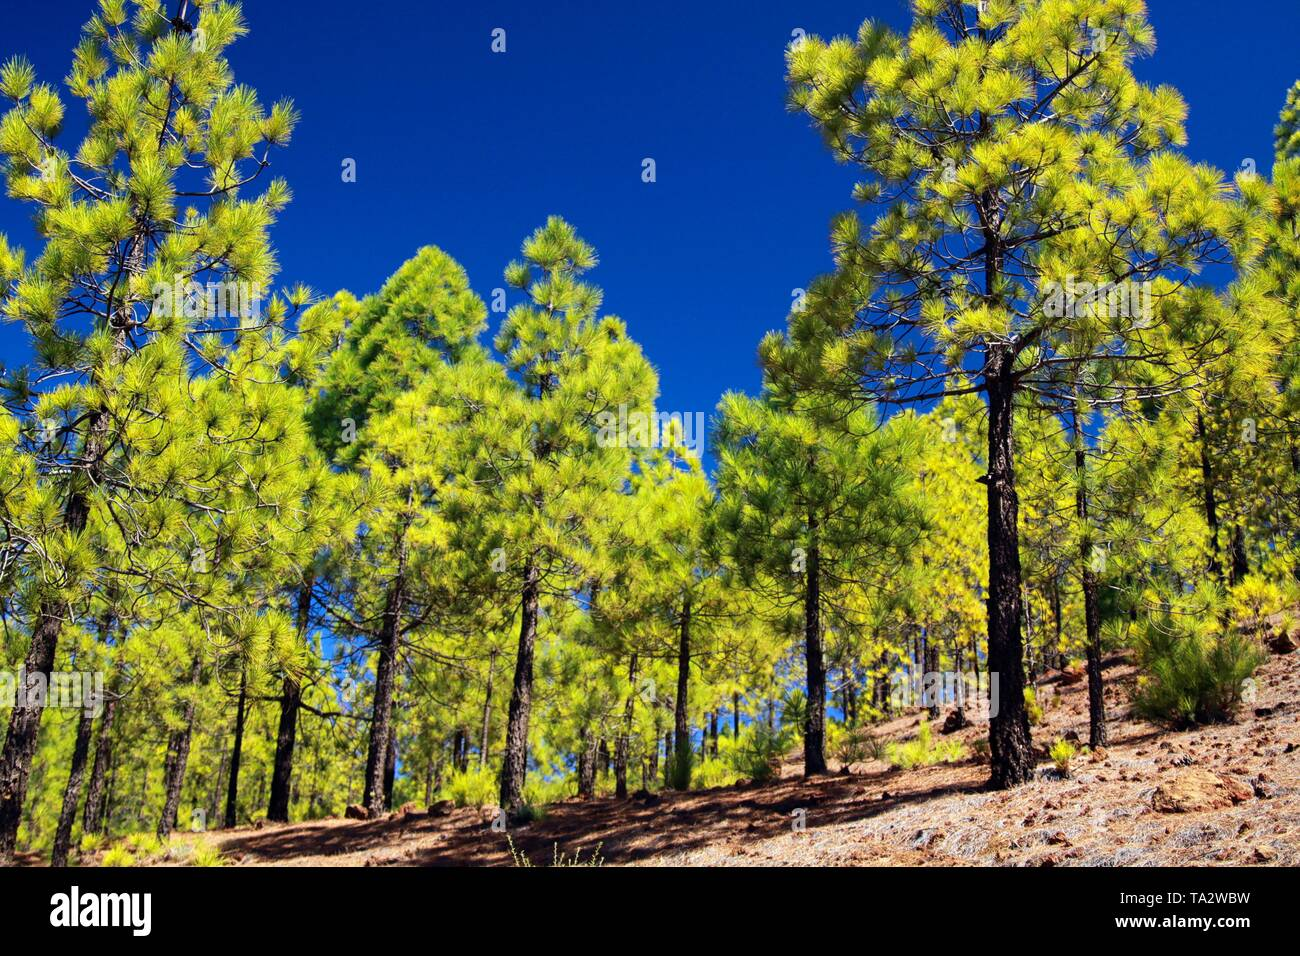 Trekking to Paisaje lunar (moon landscape) from Vilaflor along green canarian pine trees (Pinus canariensis) growing on lava ground contrasting with d - Stock Image